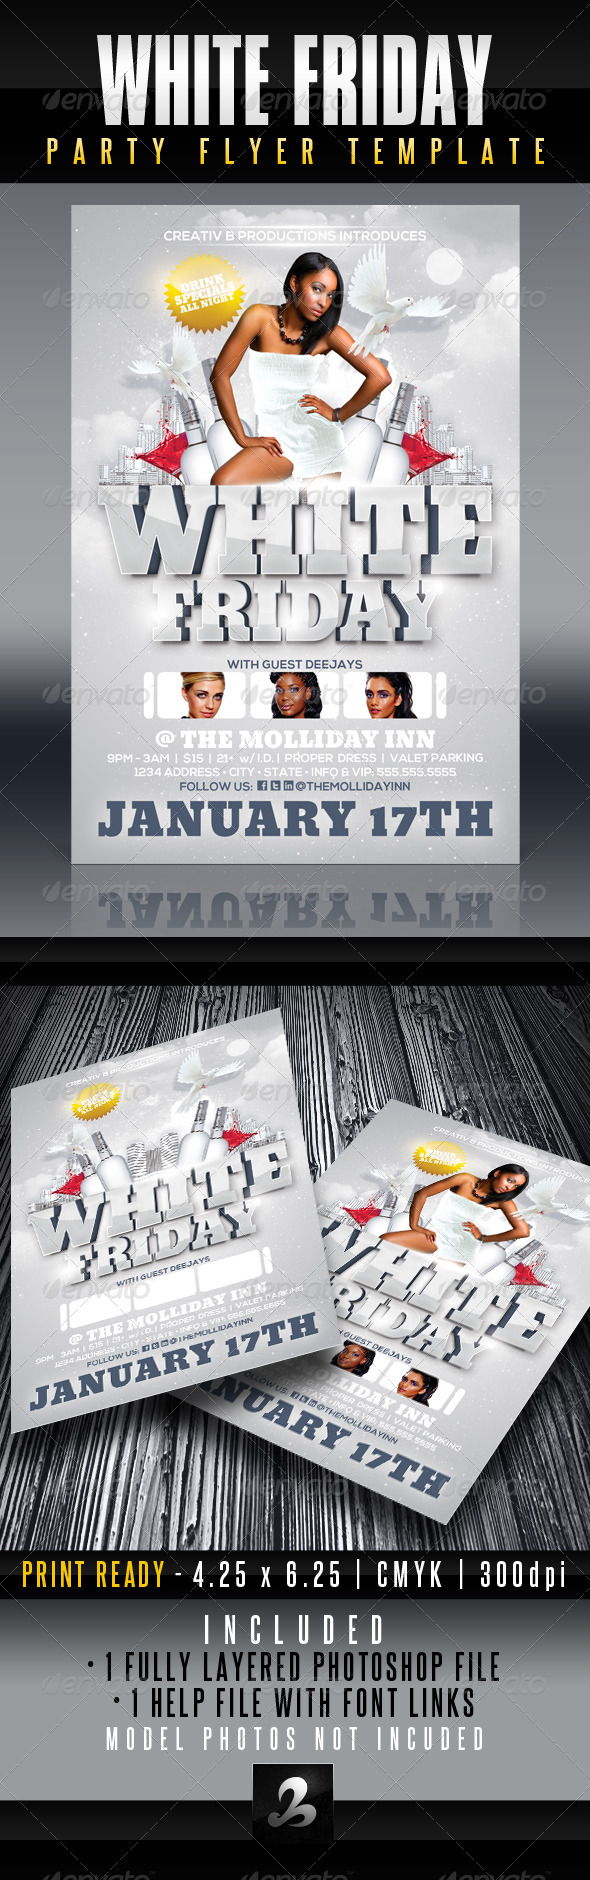 White Friday Party Flyer Template - Clubs & Parties Events